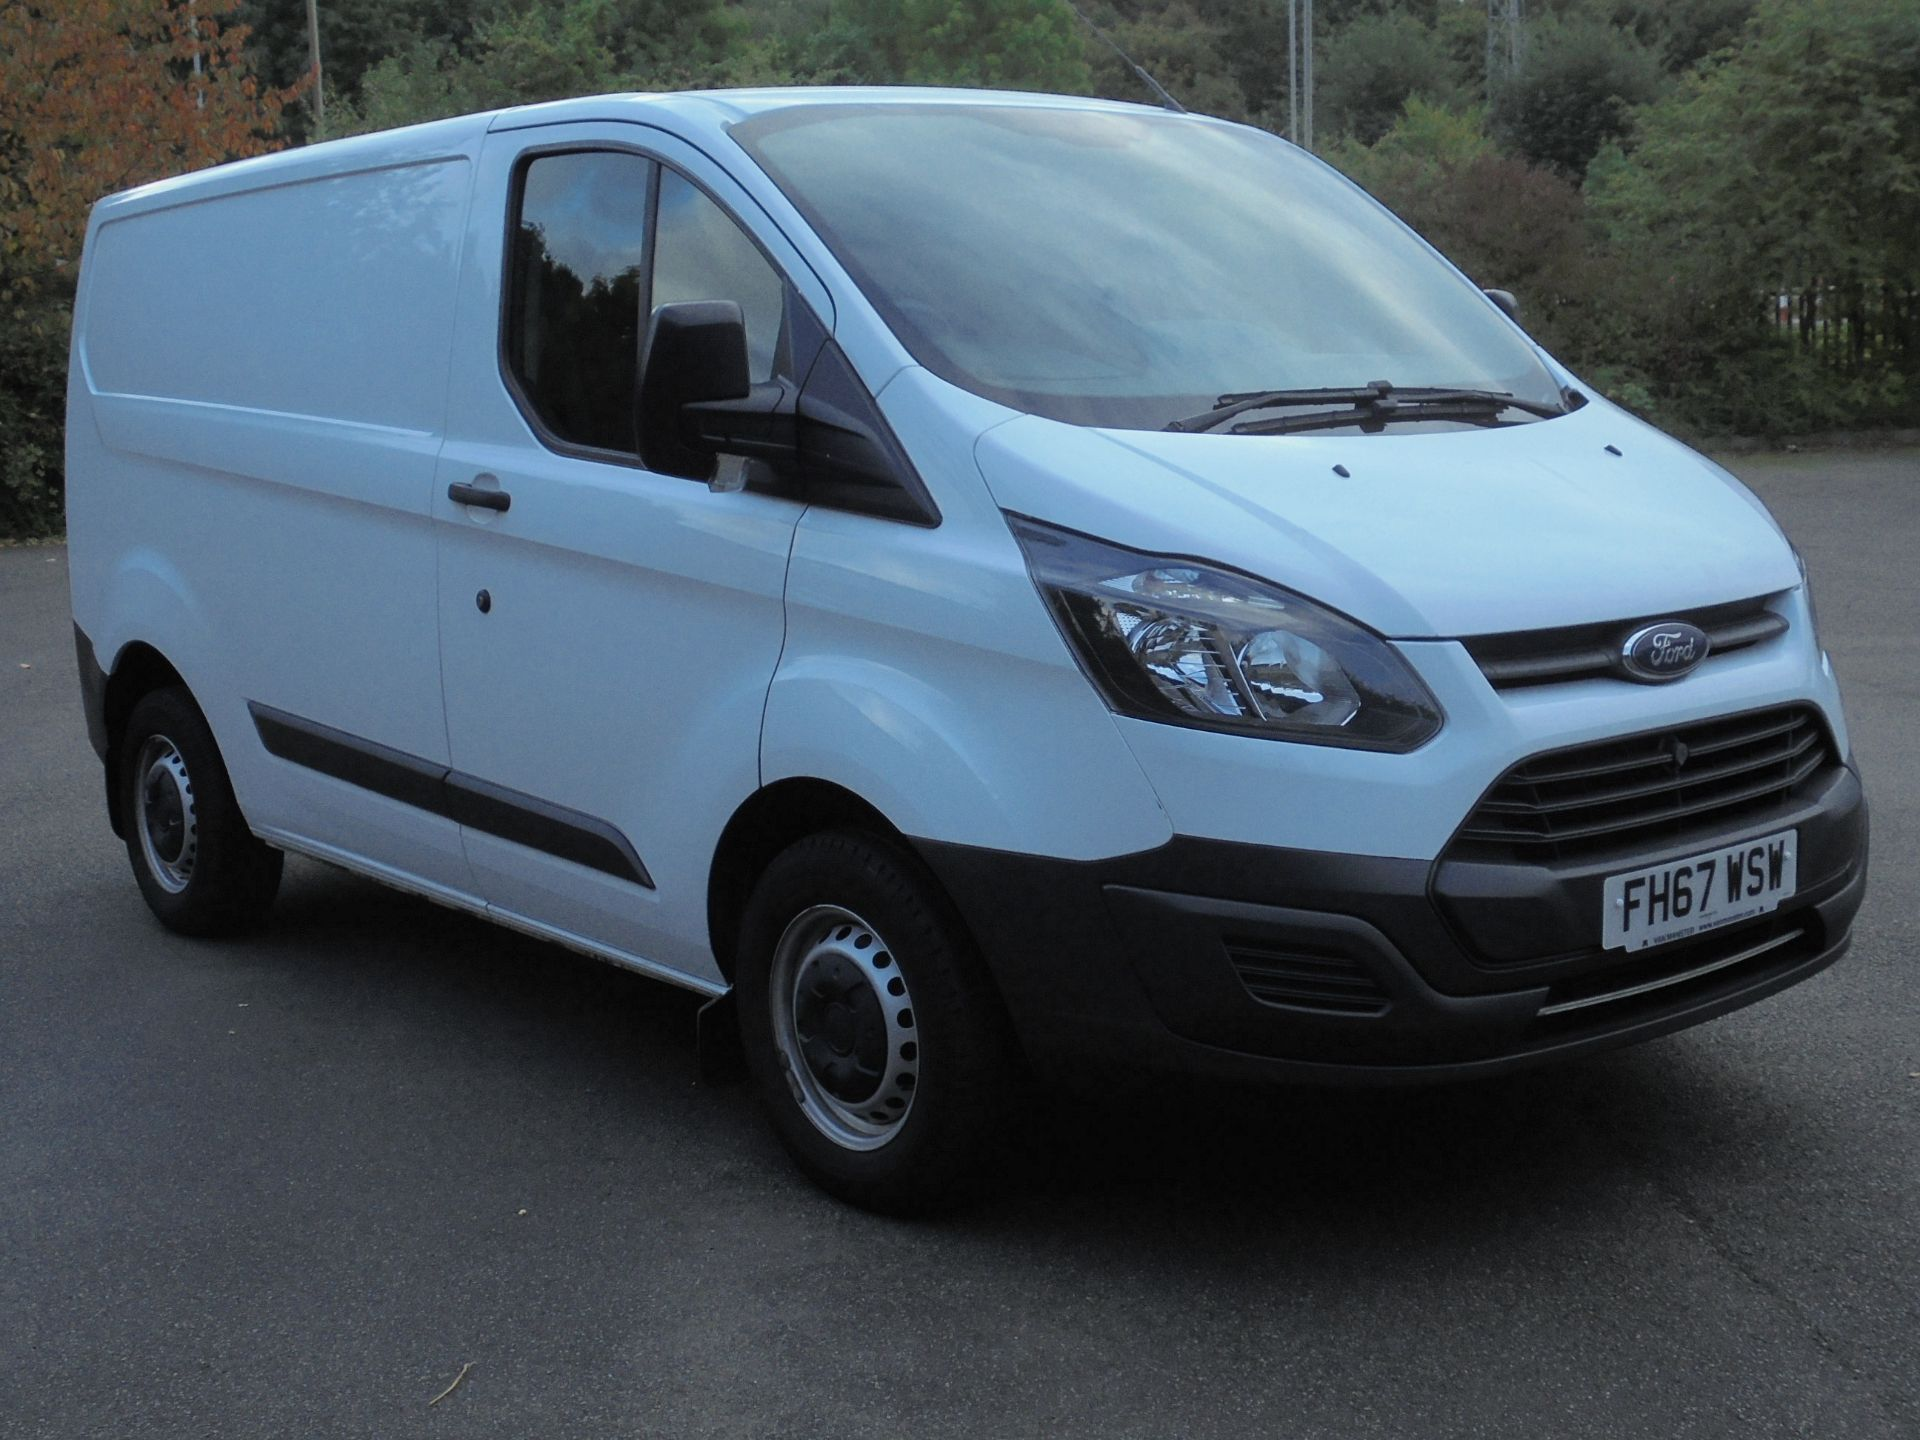 2018 Ford Transit Custom 2.0 Tdci 105Ps Low Roof Van (FH67WSW)